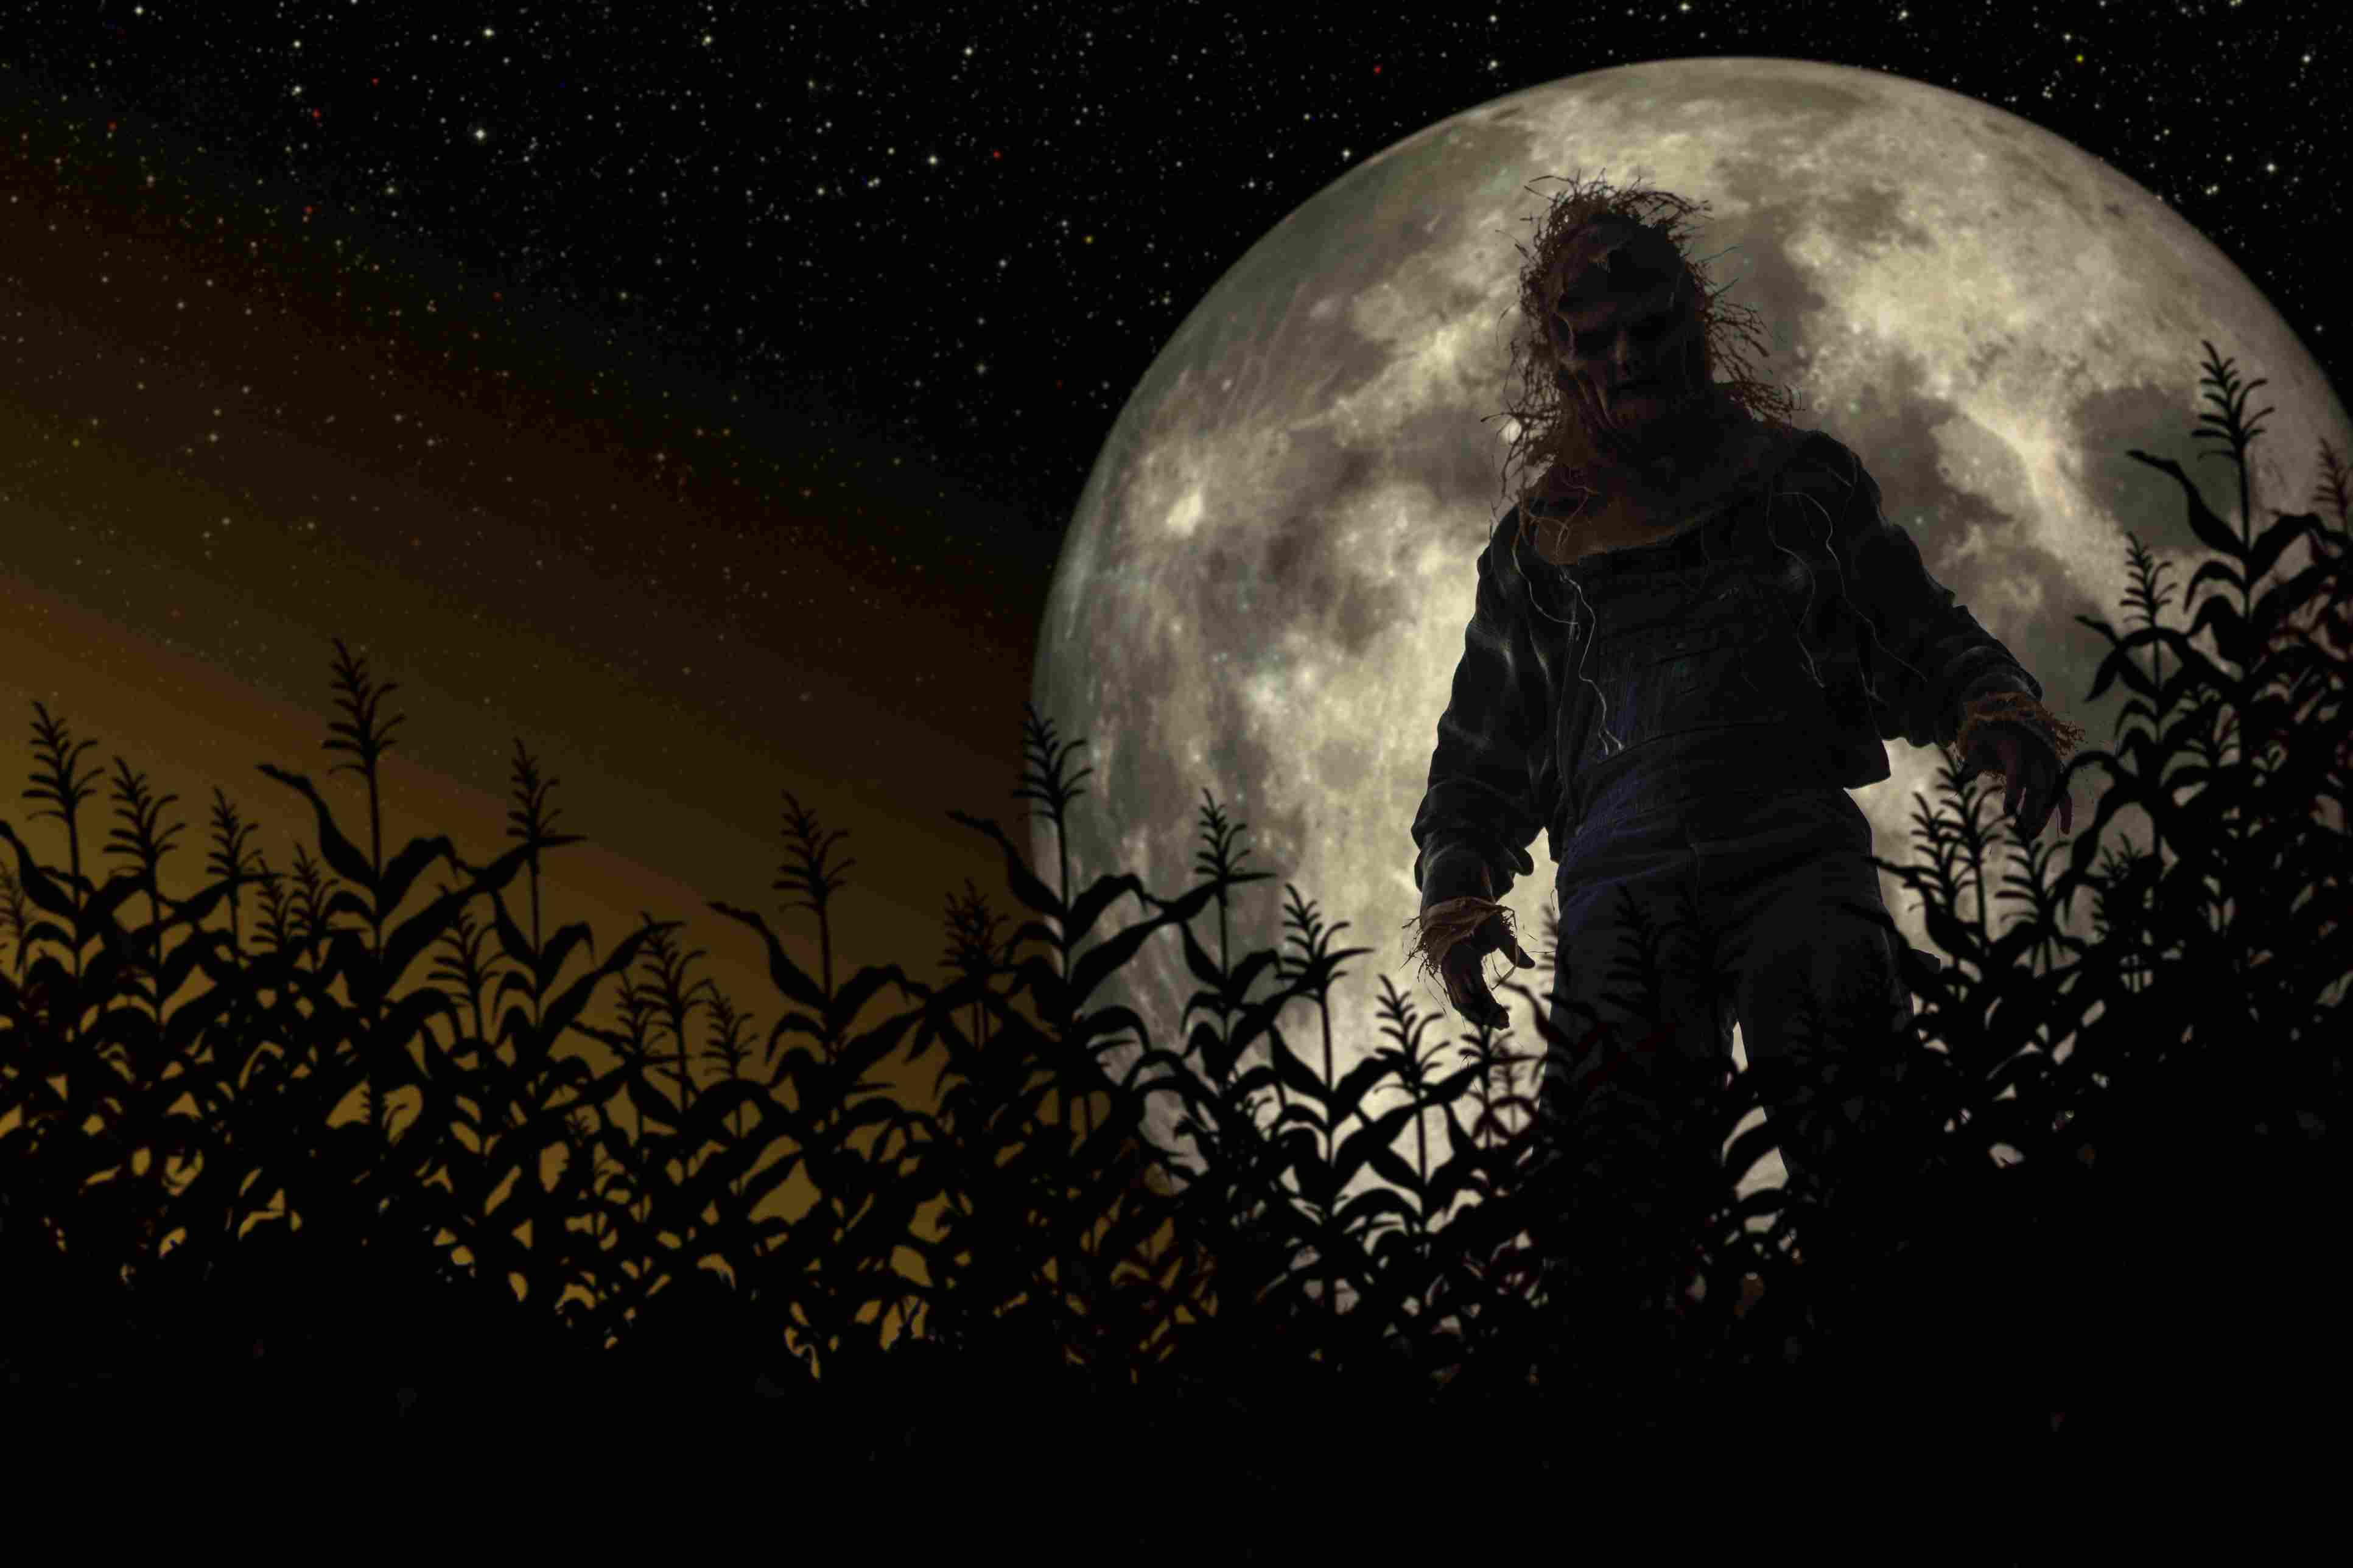 Frank saw a creature he could not identify in a cornfield.